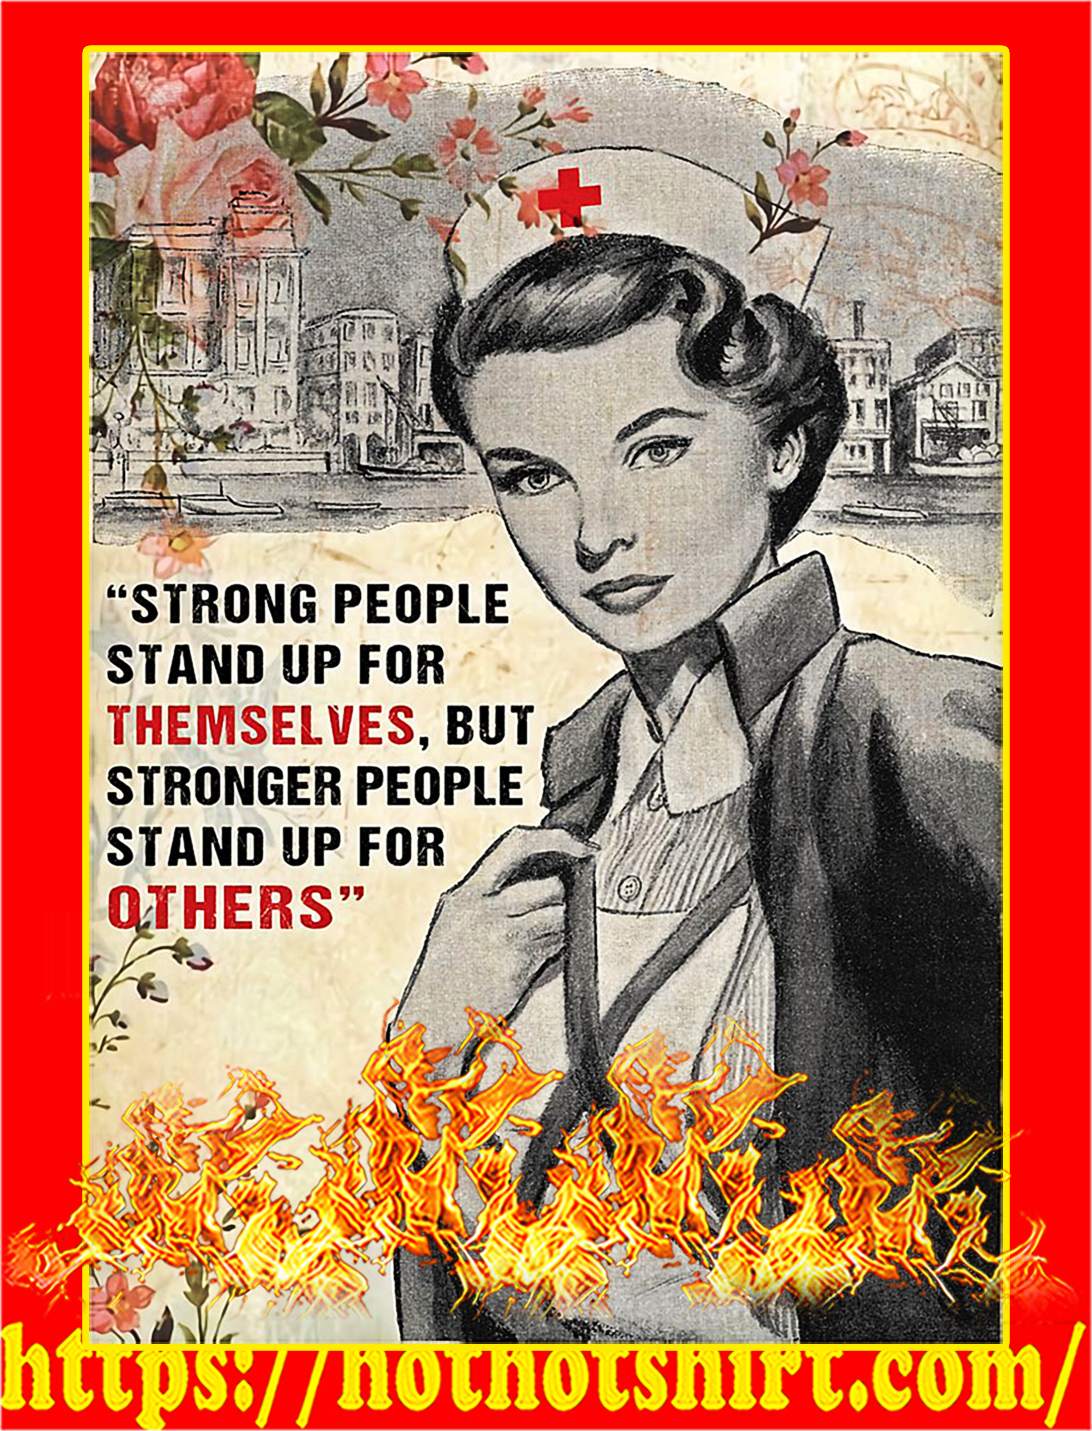 Strong people stand up for themselves nurse poster - A1